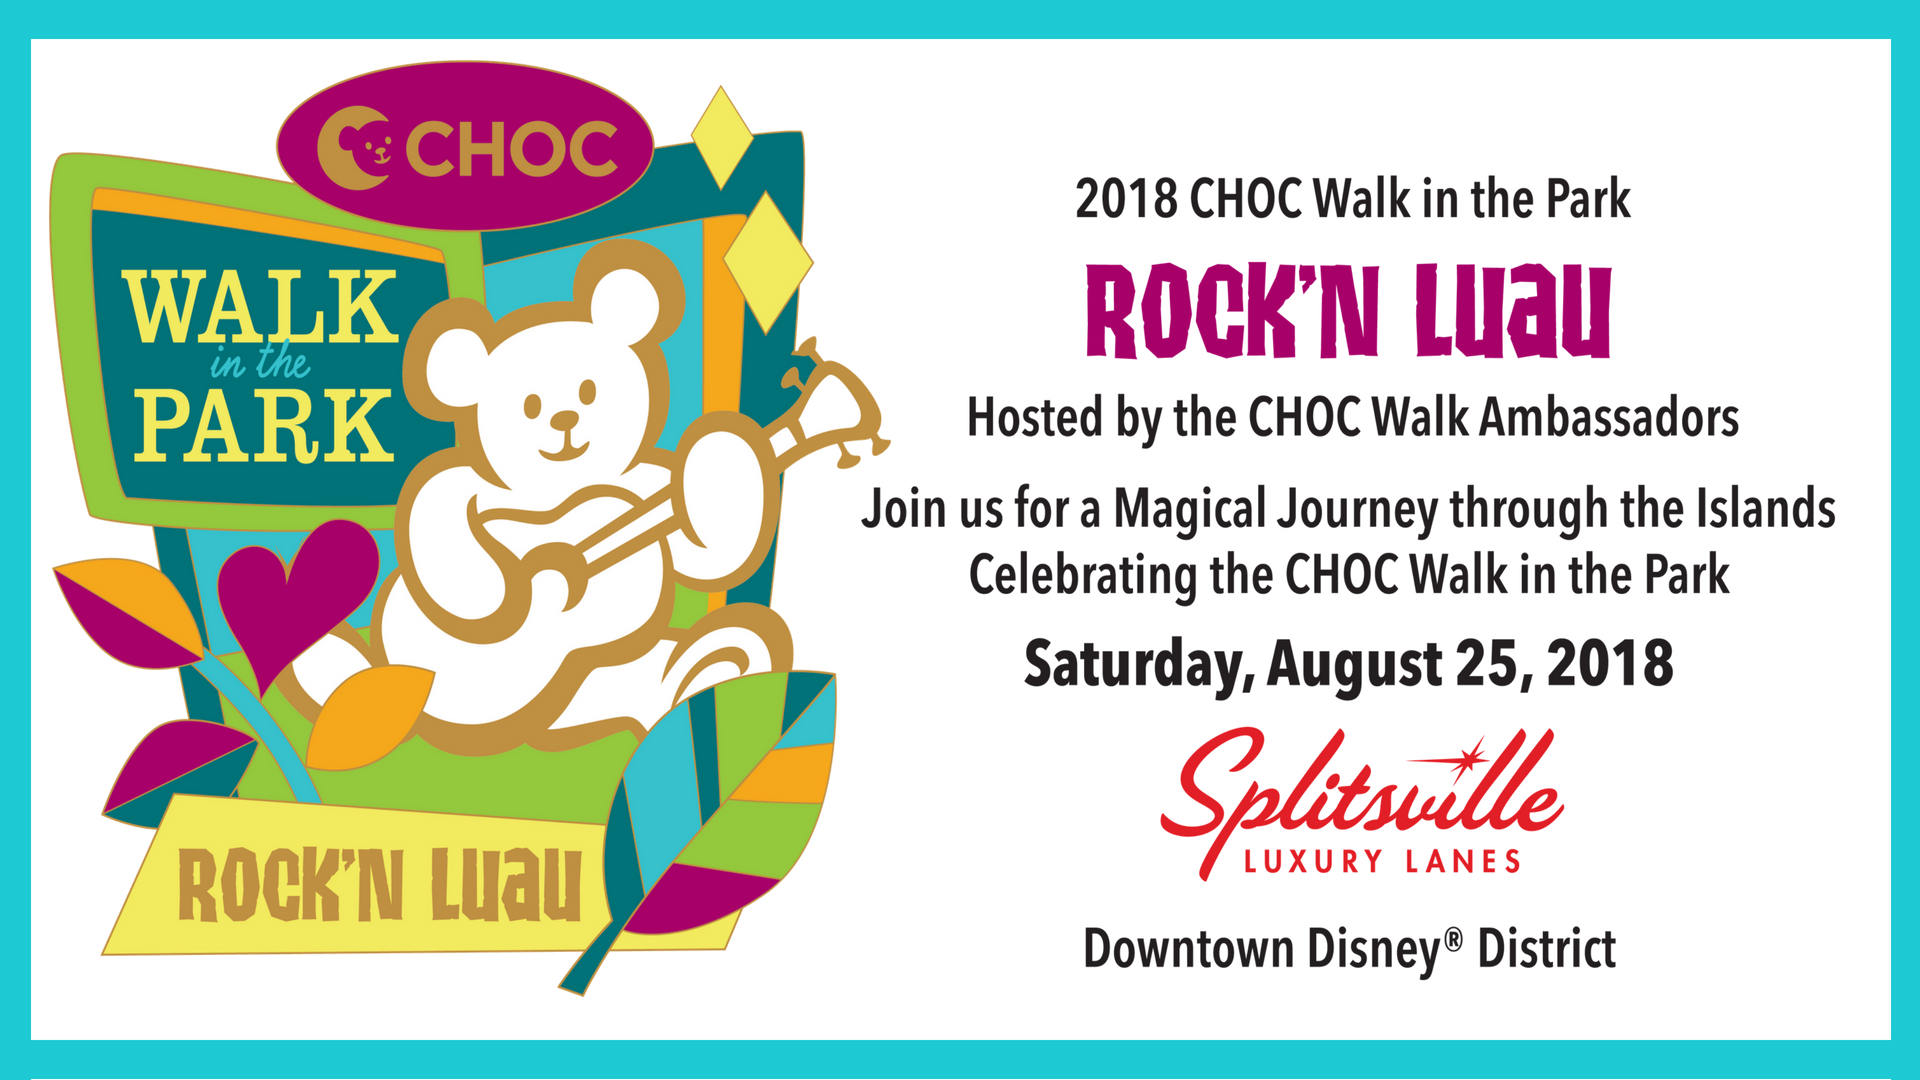 Join Elvis and Rock the Night Away at Splitsville Luxury Lanes for CHOC Walk Ambassadors' Rock'N Luau to Raise Money for the CHOC Walk in the Park!